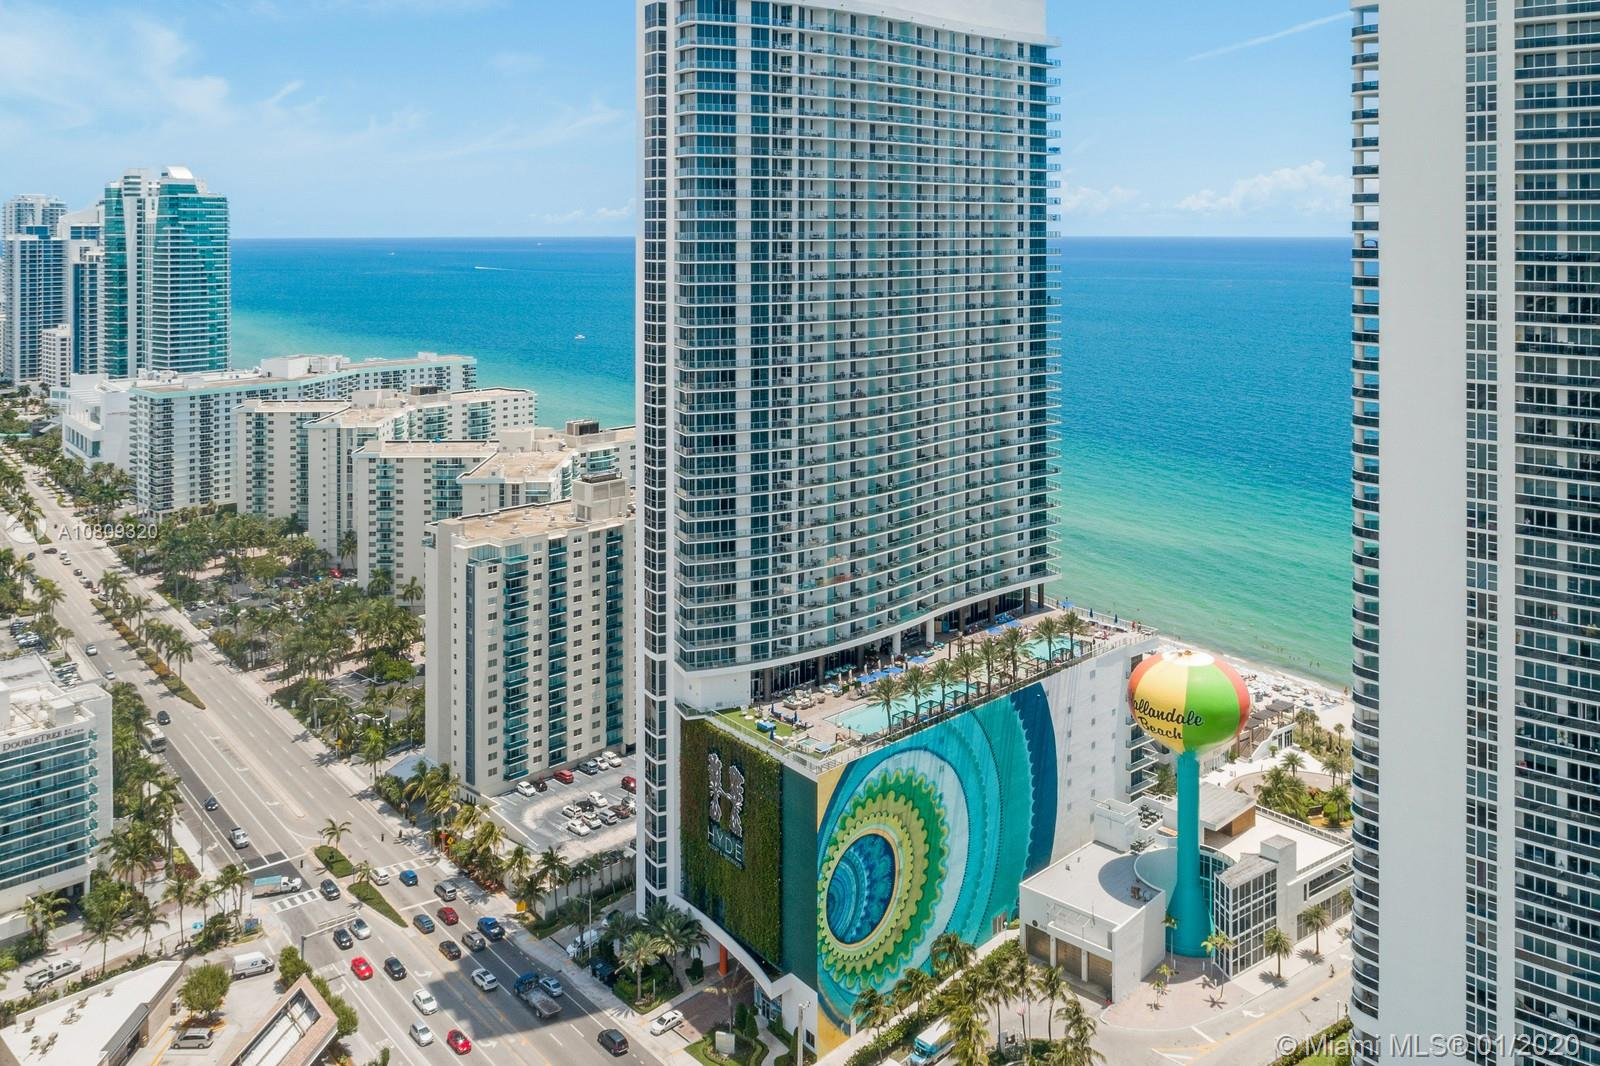 4111 S Ocean Dr # 3506, Hollywood, Florida 33019, 2 Bedrooms Bedrooms, ,2 BathroomsBathrooms,Residential,For Sale,4111 S Ocean Dr # 3506,A10809320